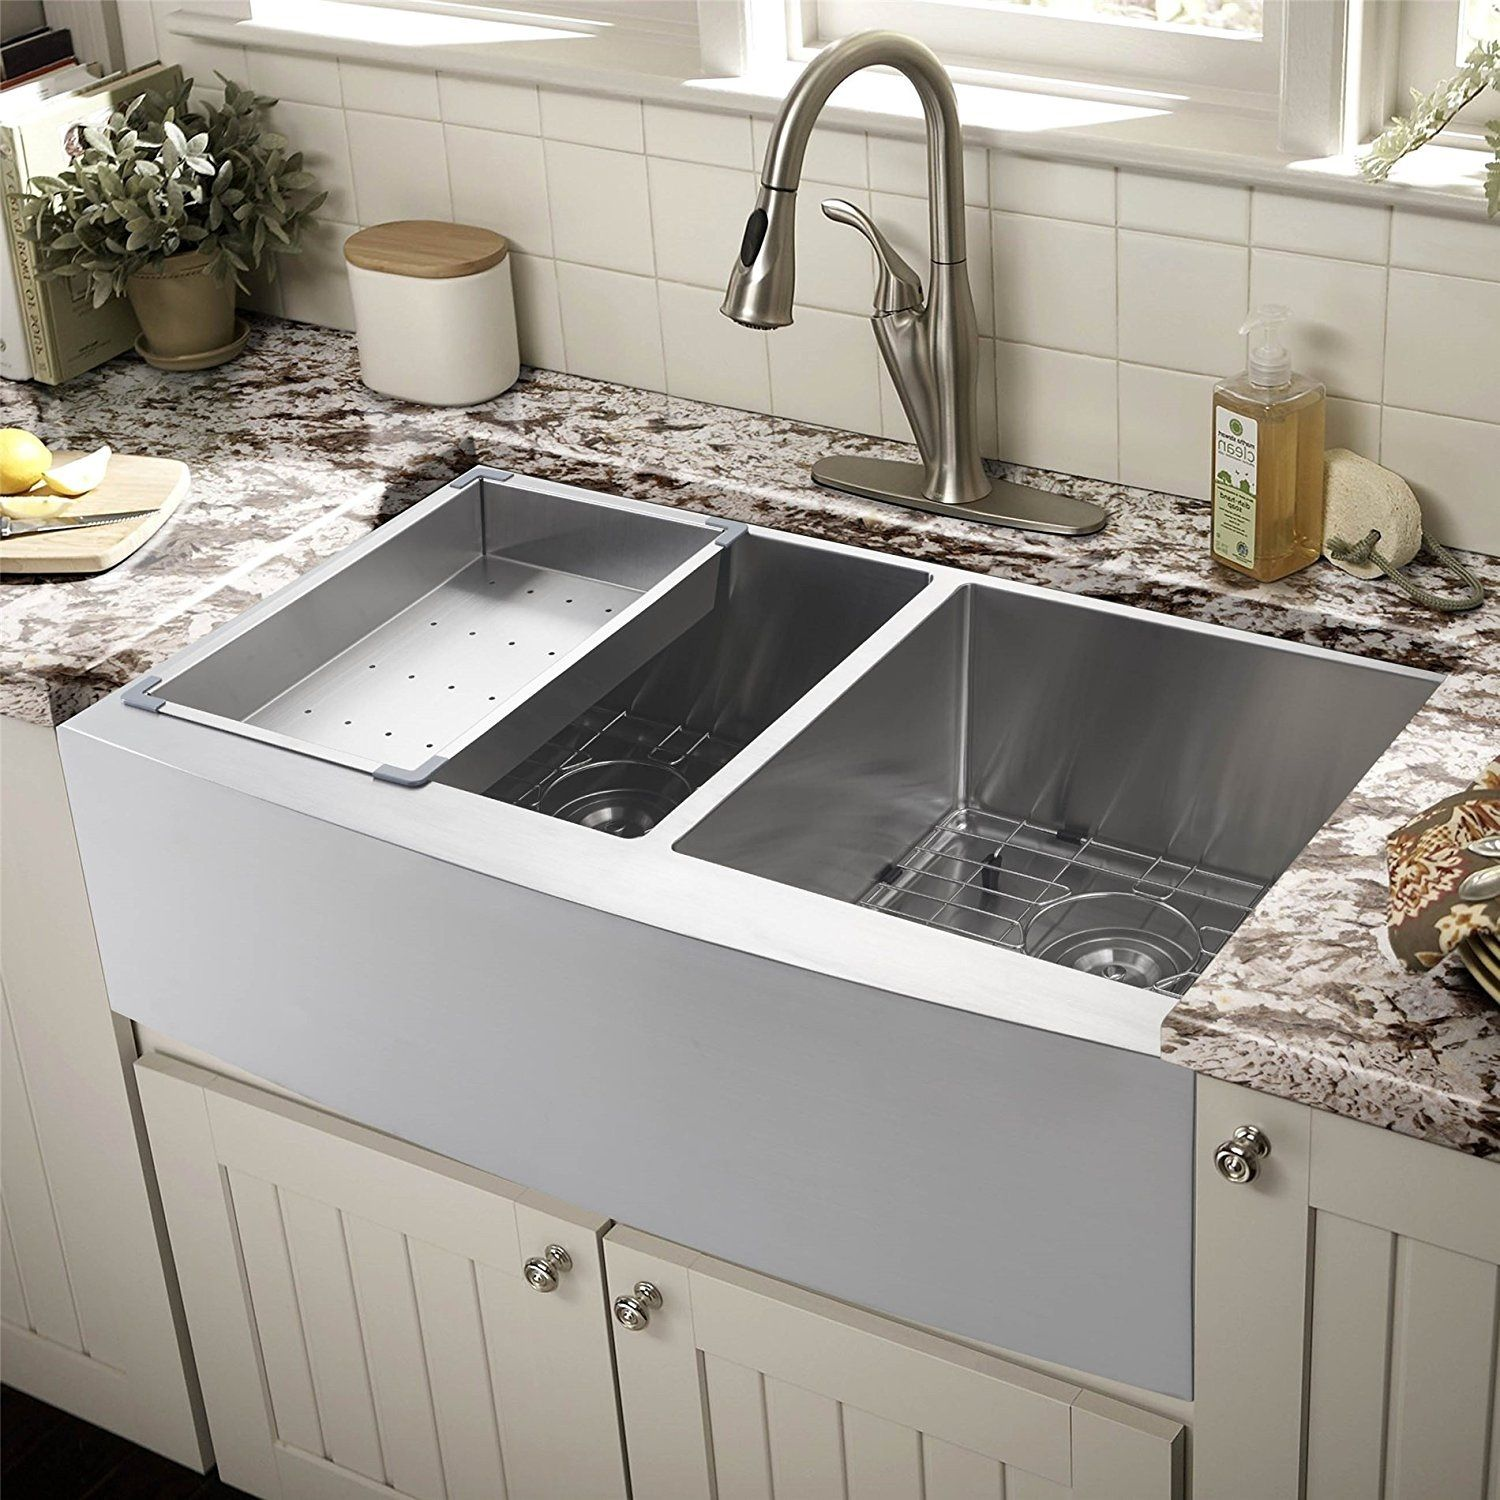 Farmhouse Sinks Farmhouse Goals Farmhouse Sink Kitchen Best